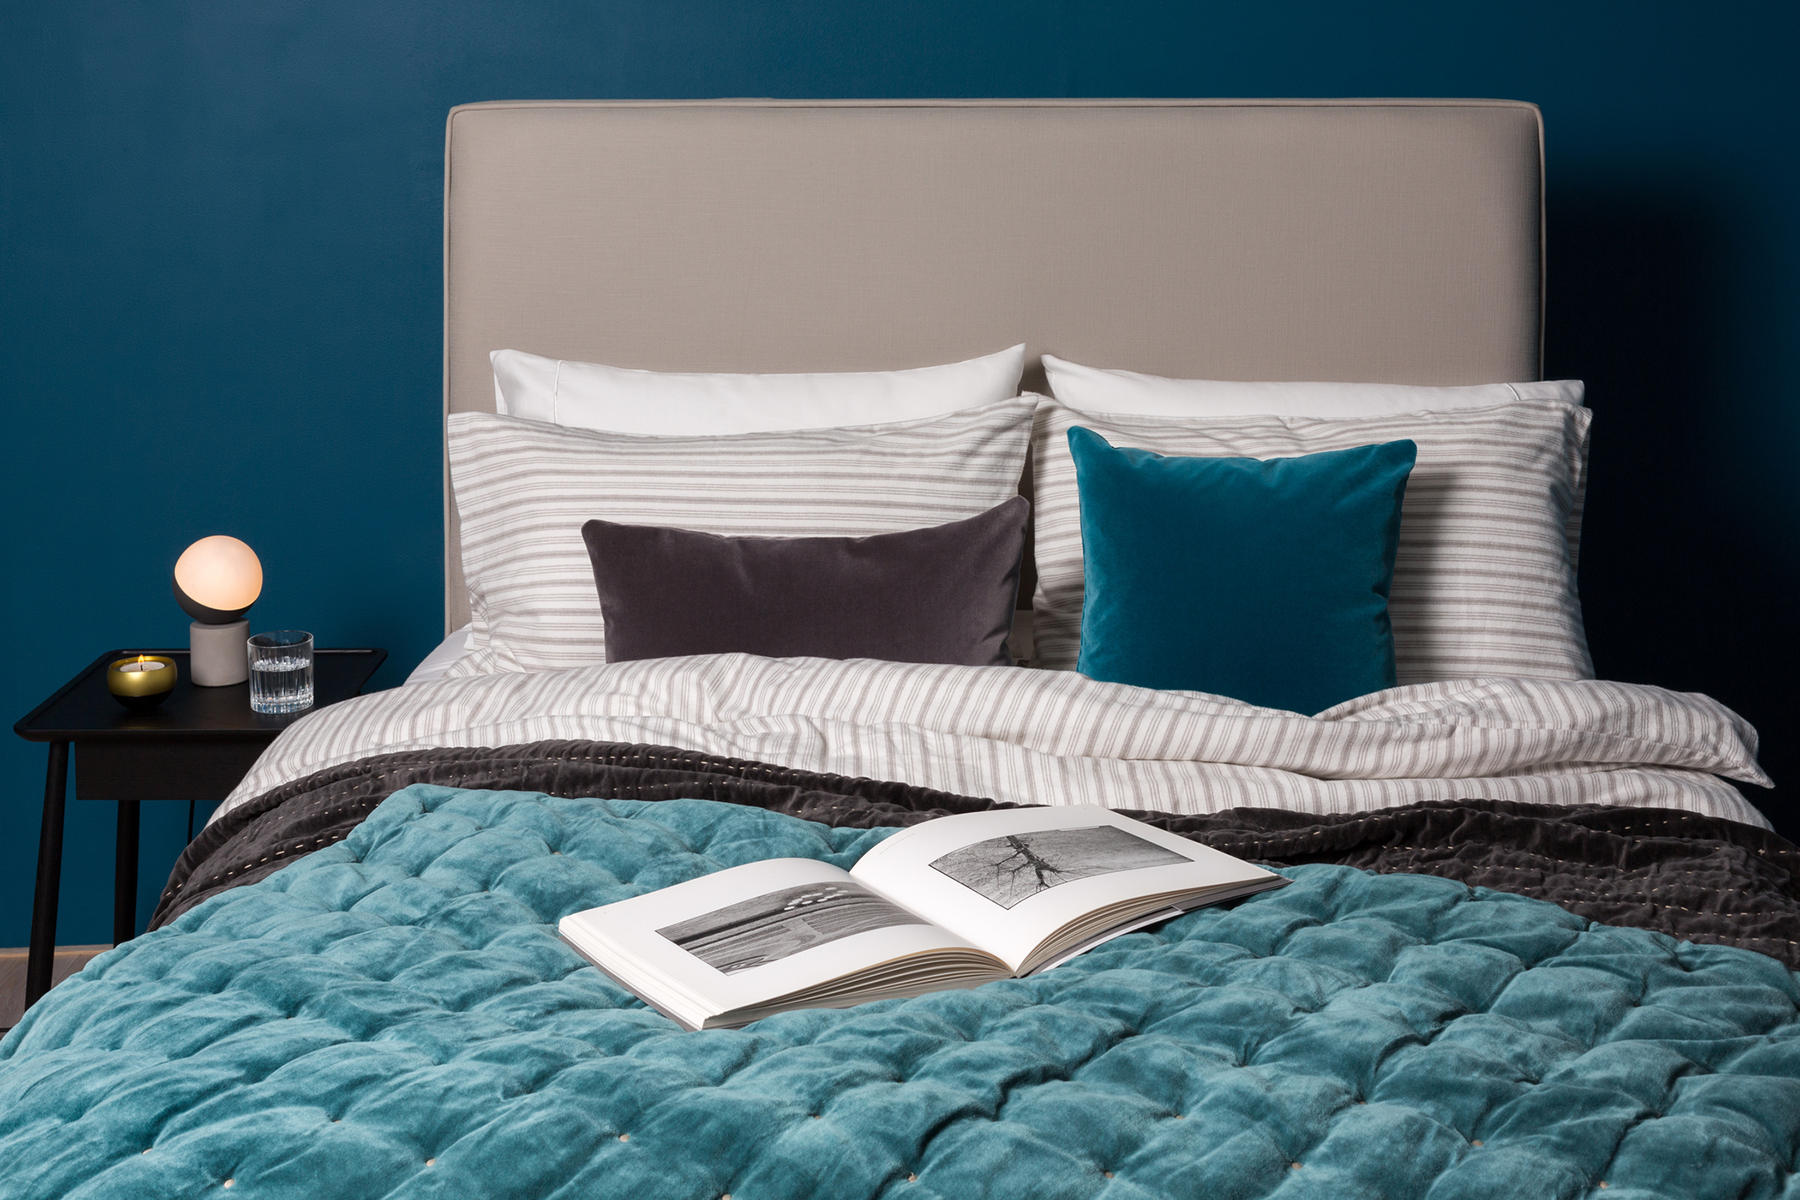 Teal Room Decor Ideas Heal s Blog